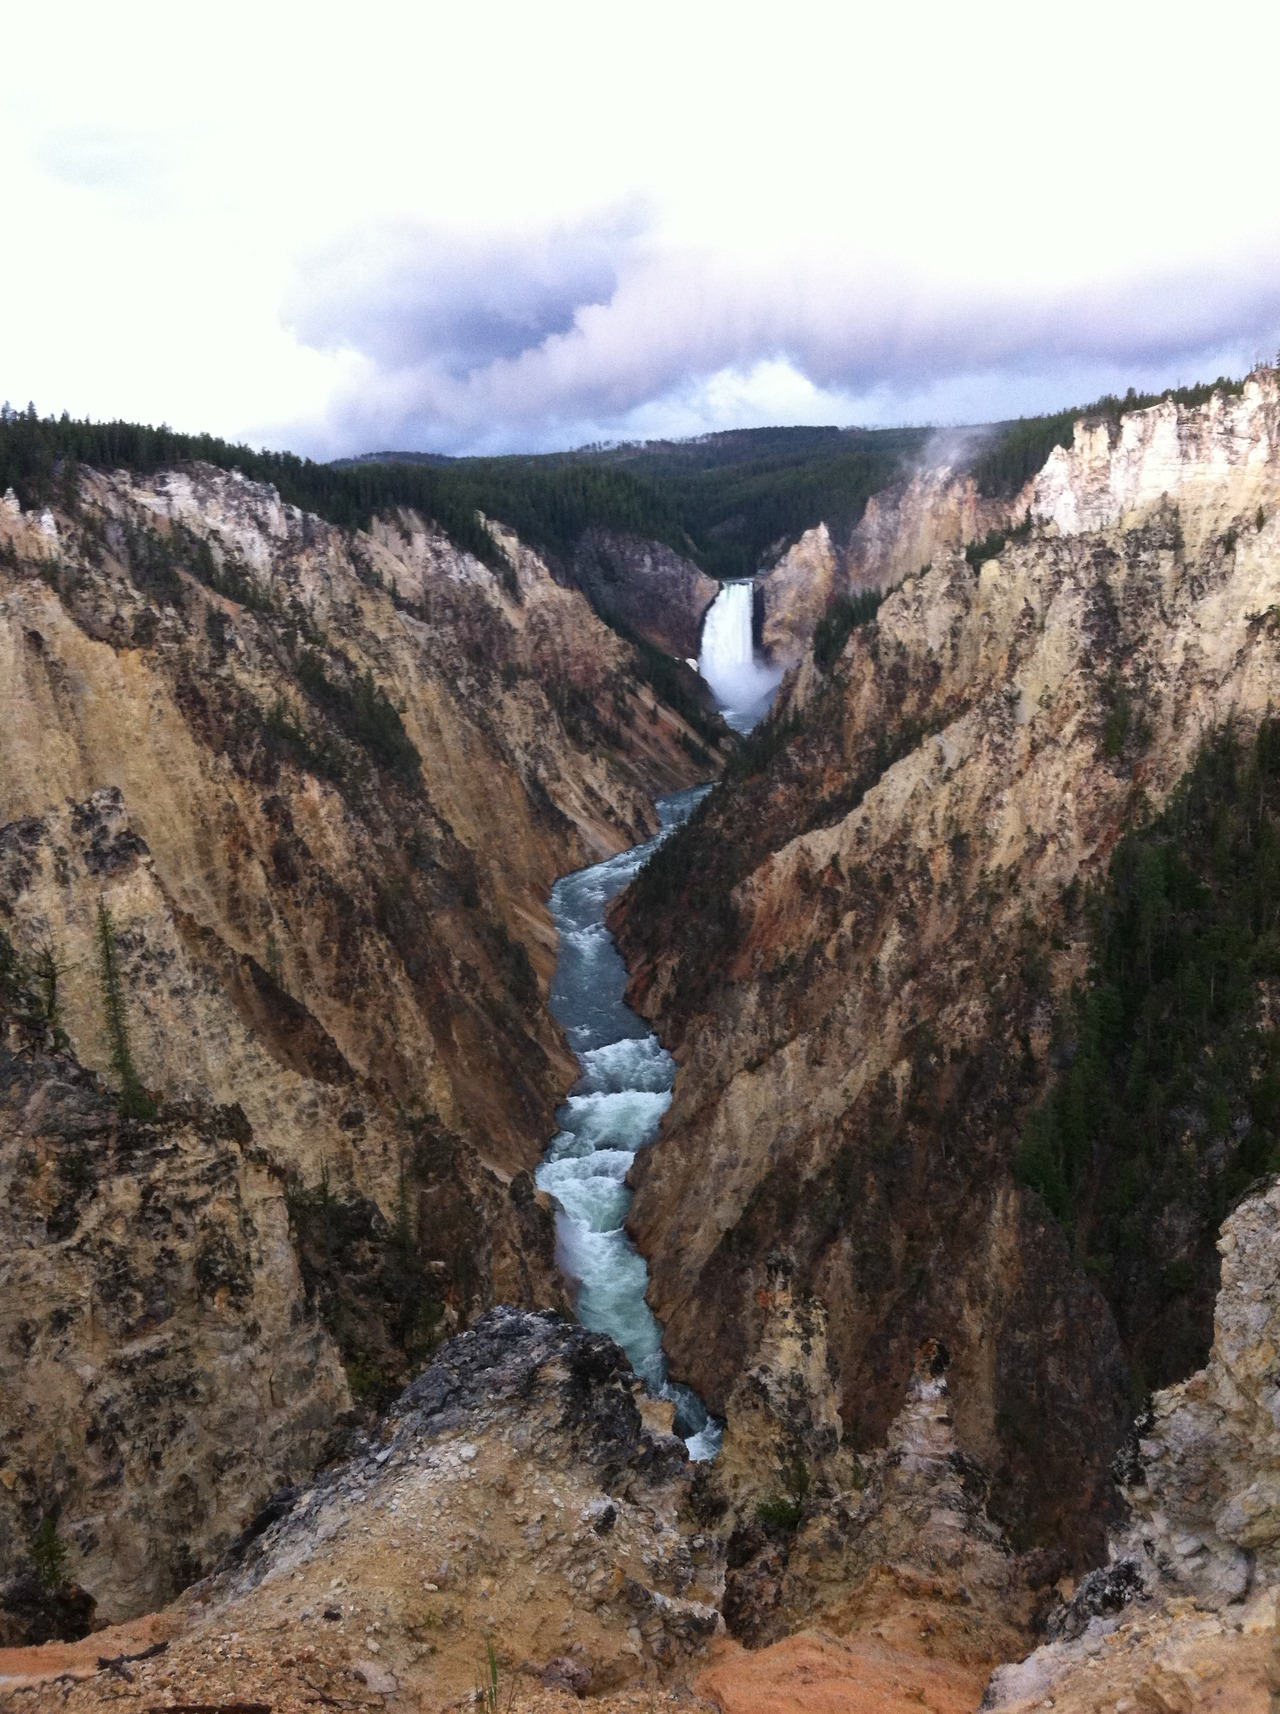 Yellowstone Grand Canyon    Just spent a week out west in the never ending quest for  landscape cutis anserina.  The trip was an awe inspiring exploration of the Tetons and Yellowstone that left me with hundreds of new ideas and creative inspirations.    iphone photography (if I can call it that)   July 2012